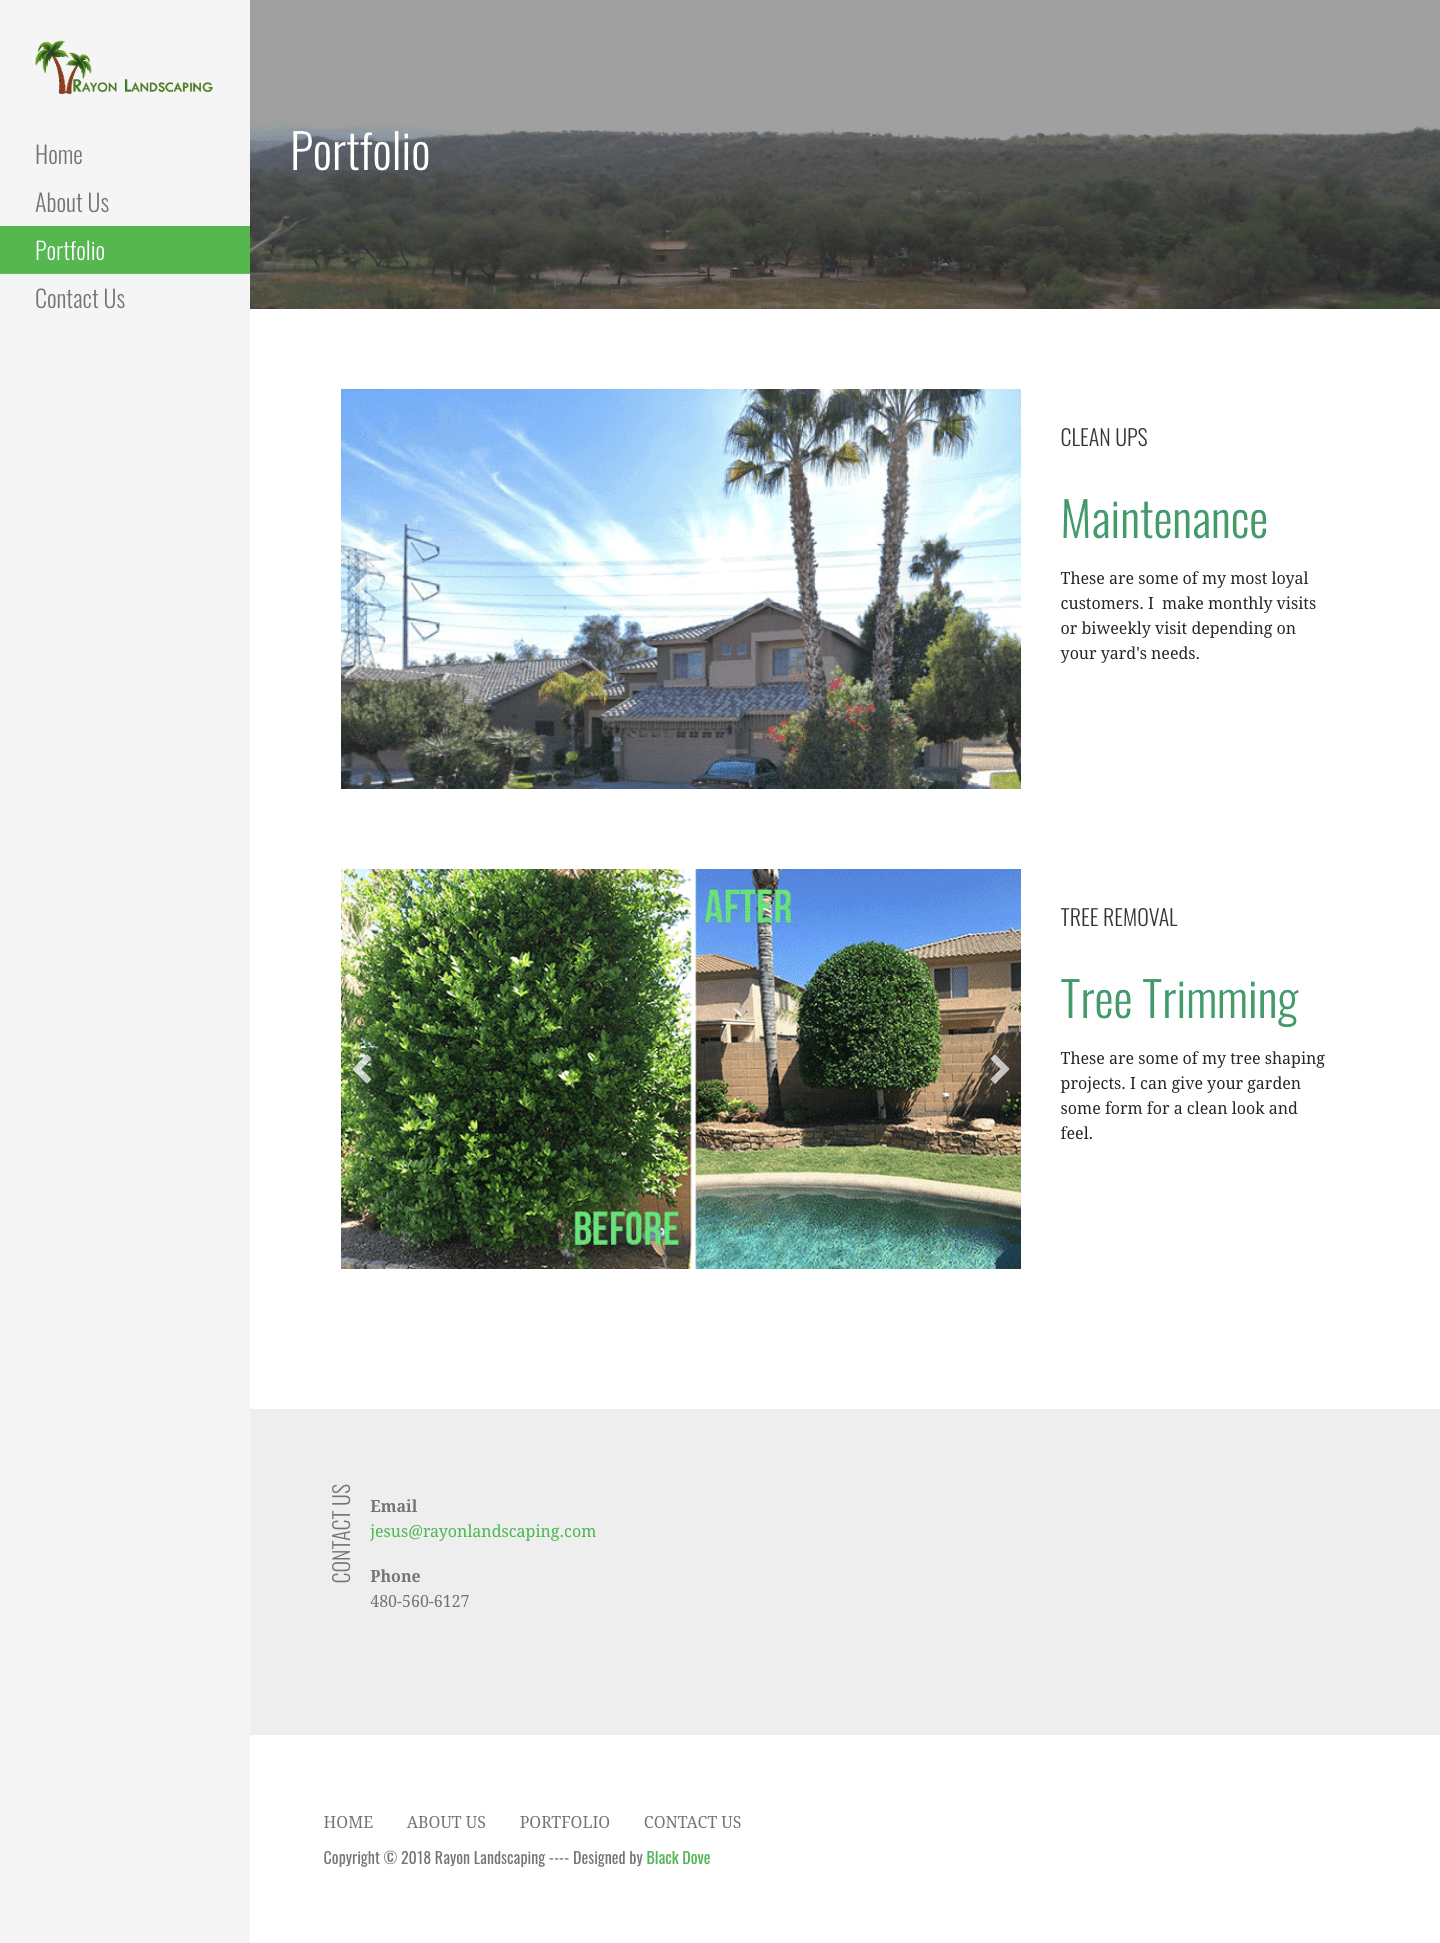 screencapture-rayonlandscaping-portfolio-2019-01-29-20_55_40